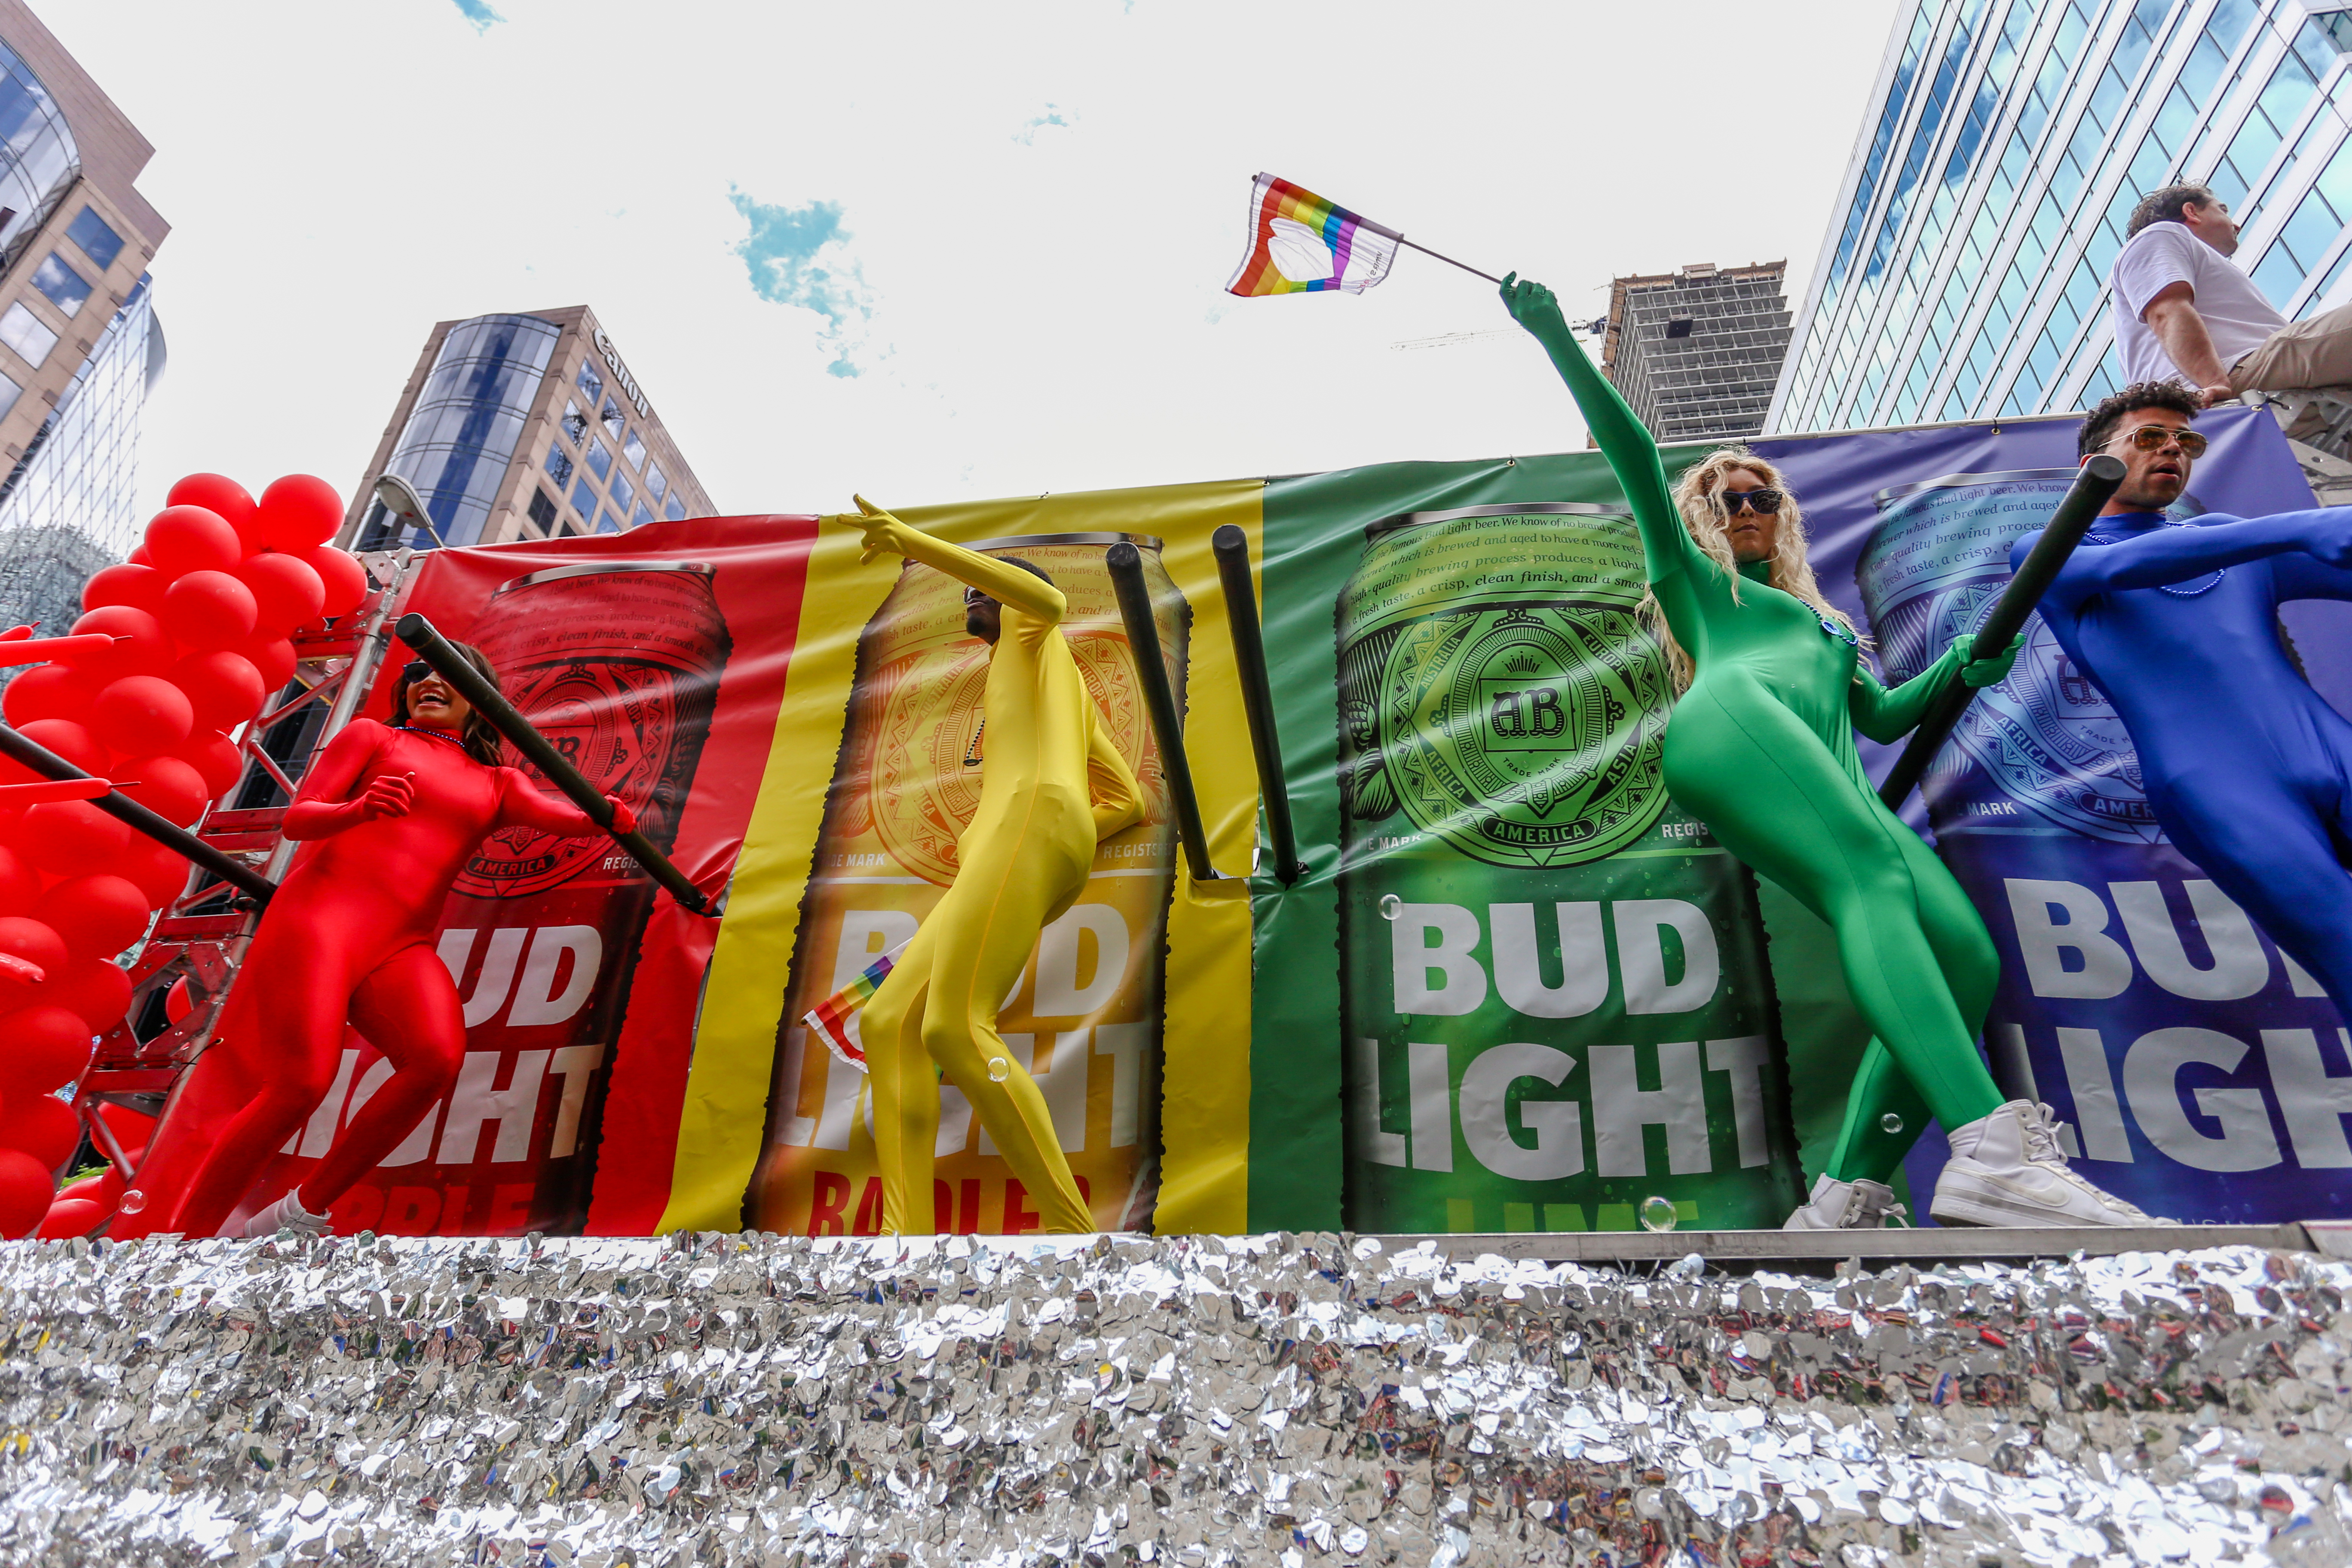 Young people in colorful lycra onesies dance on a rainbow Bud Light float at a Pride parade.